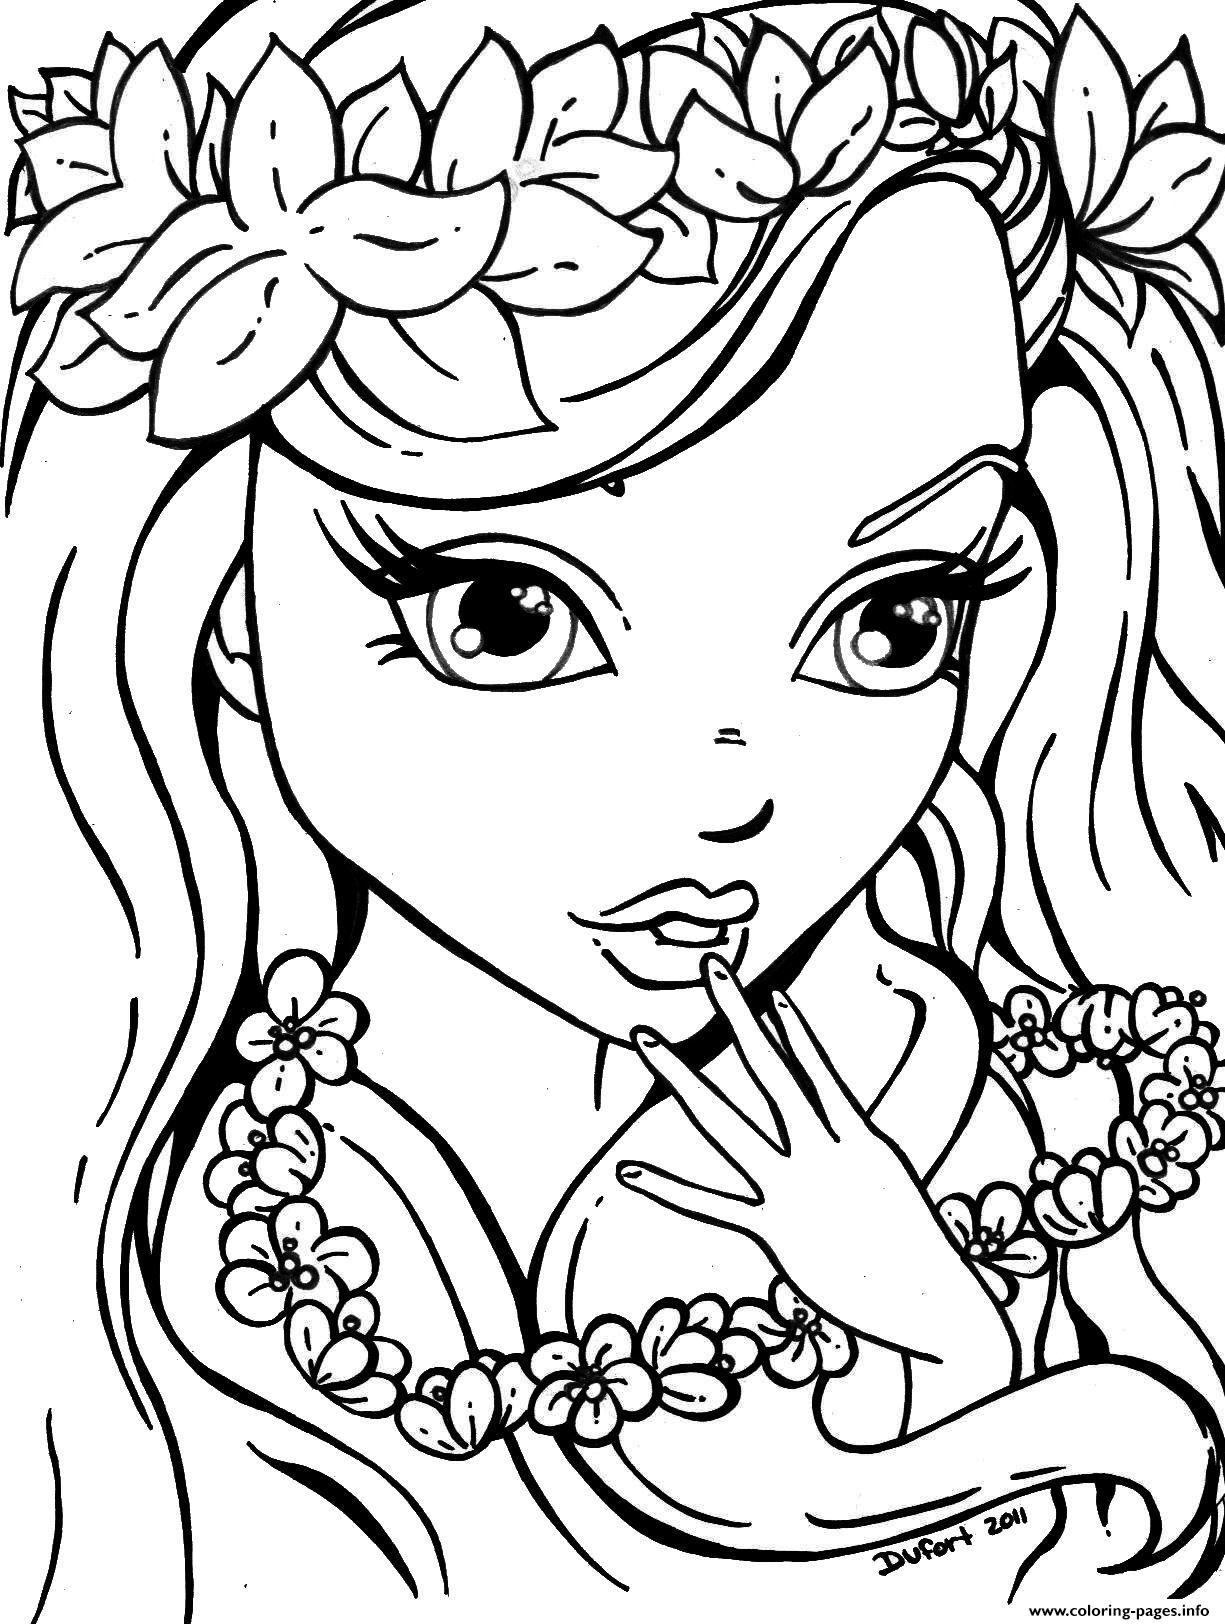 Flowers Girls For Teens Coloring Pages Printable